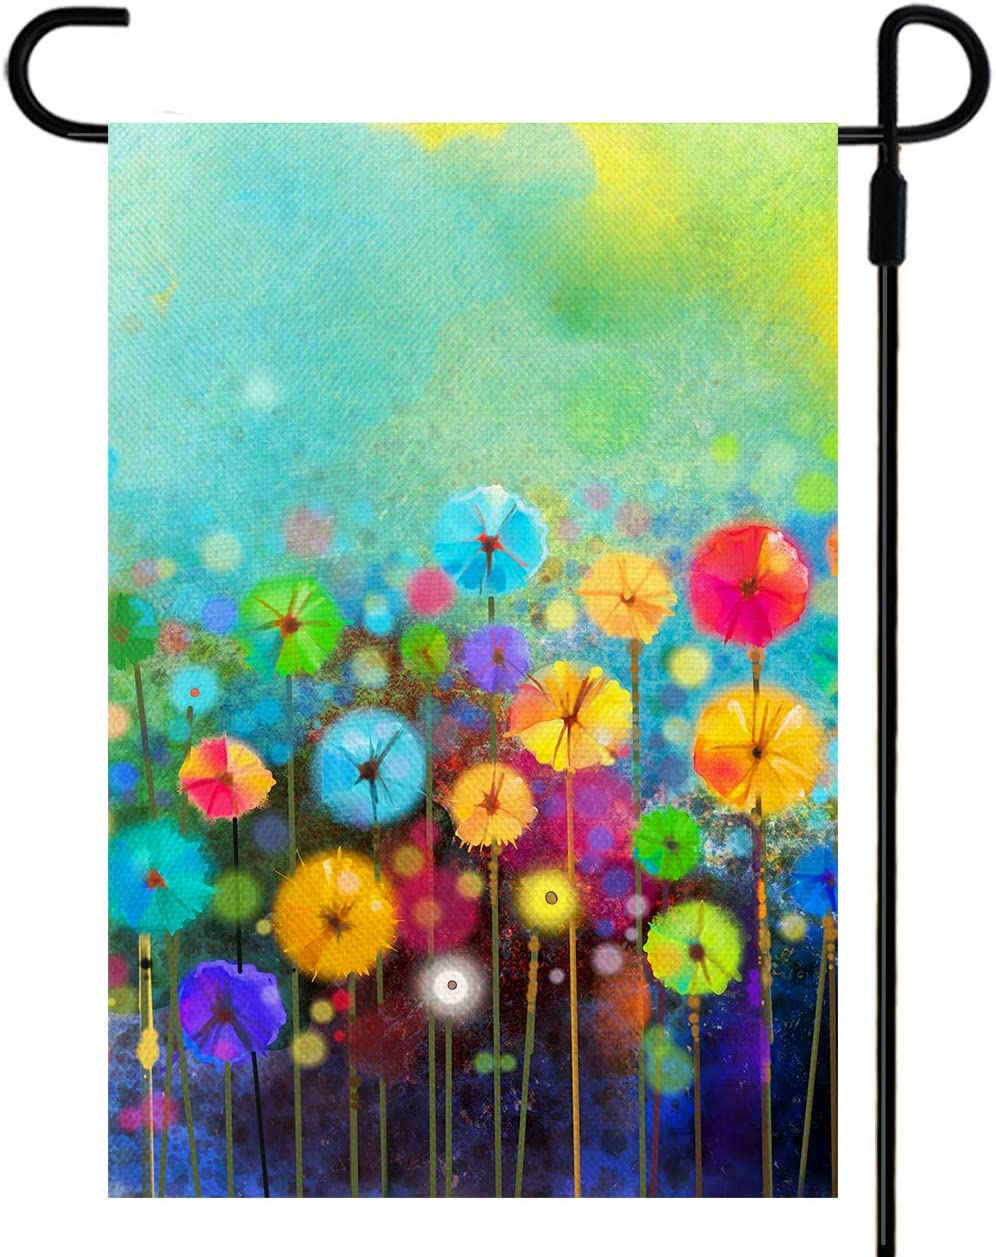 Yileqi Watercolor Abstract Floral Flower Garden Flag Double Sided Painting on Soft Color Flowers Flag, Burlap Small Yard Flag Spring Summer Outdoor Decoration 12.5 x 18 inches